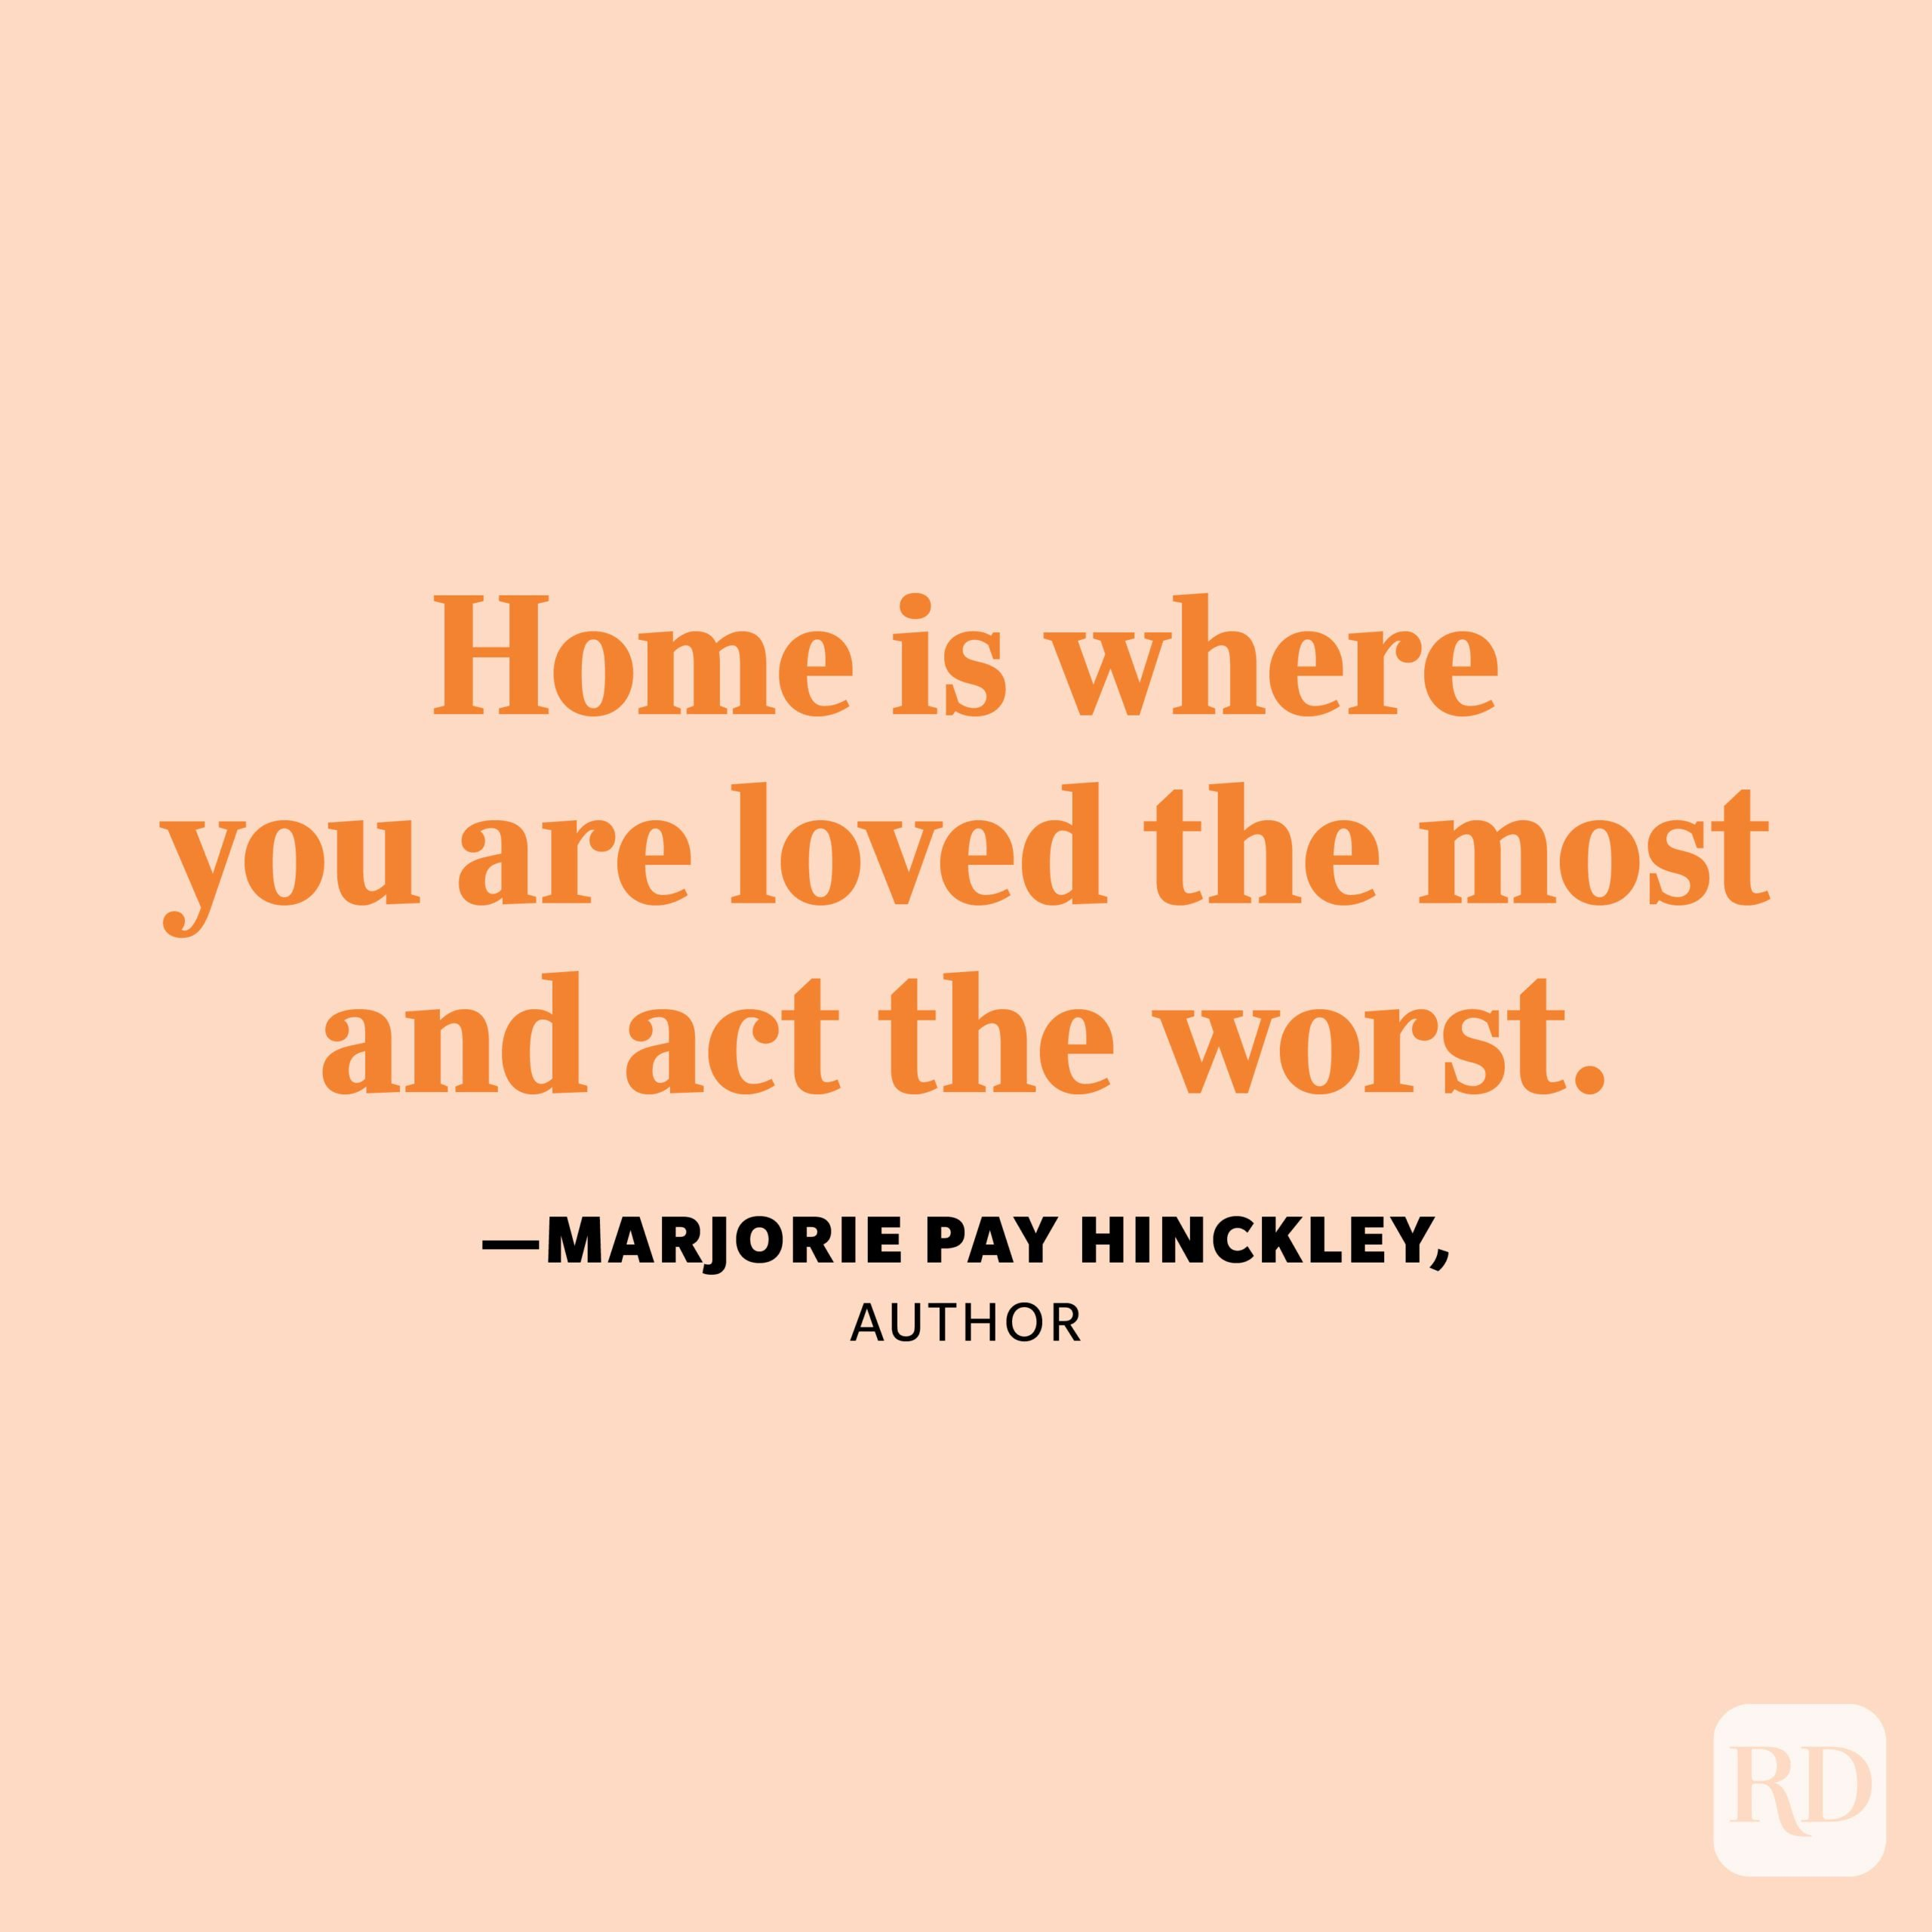 """""""Home is where you are loved the most and act the worst."""" —Marjorie Pay Hinckley, author"""